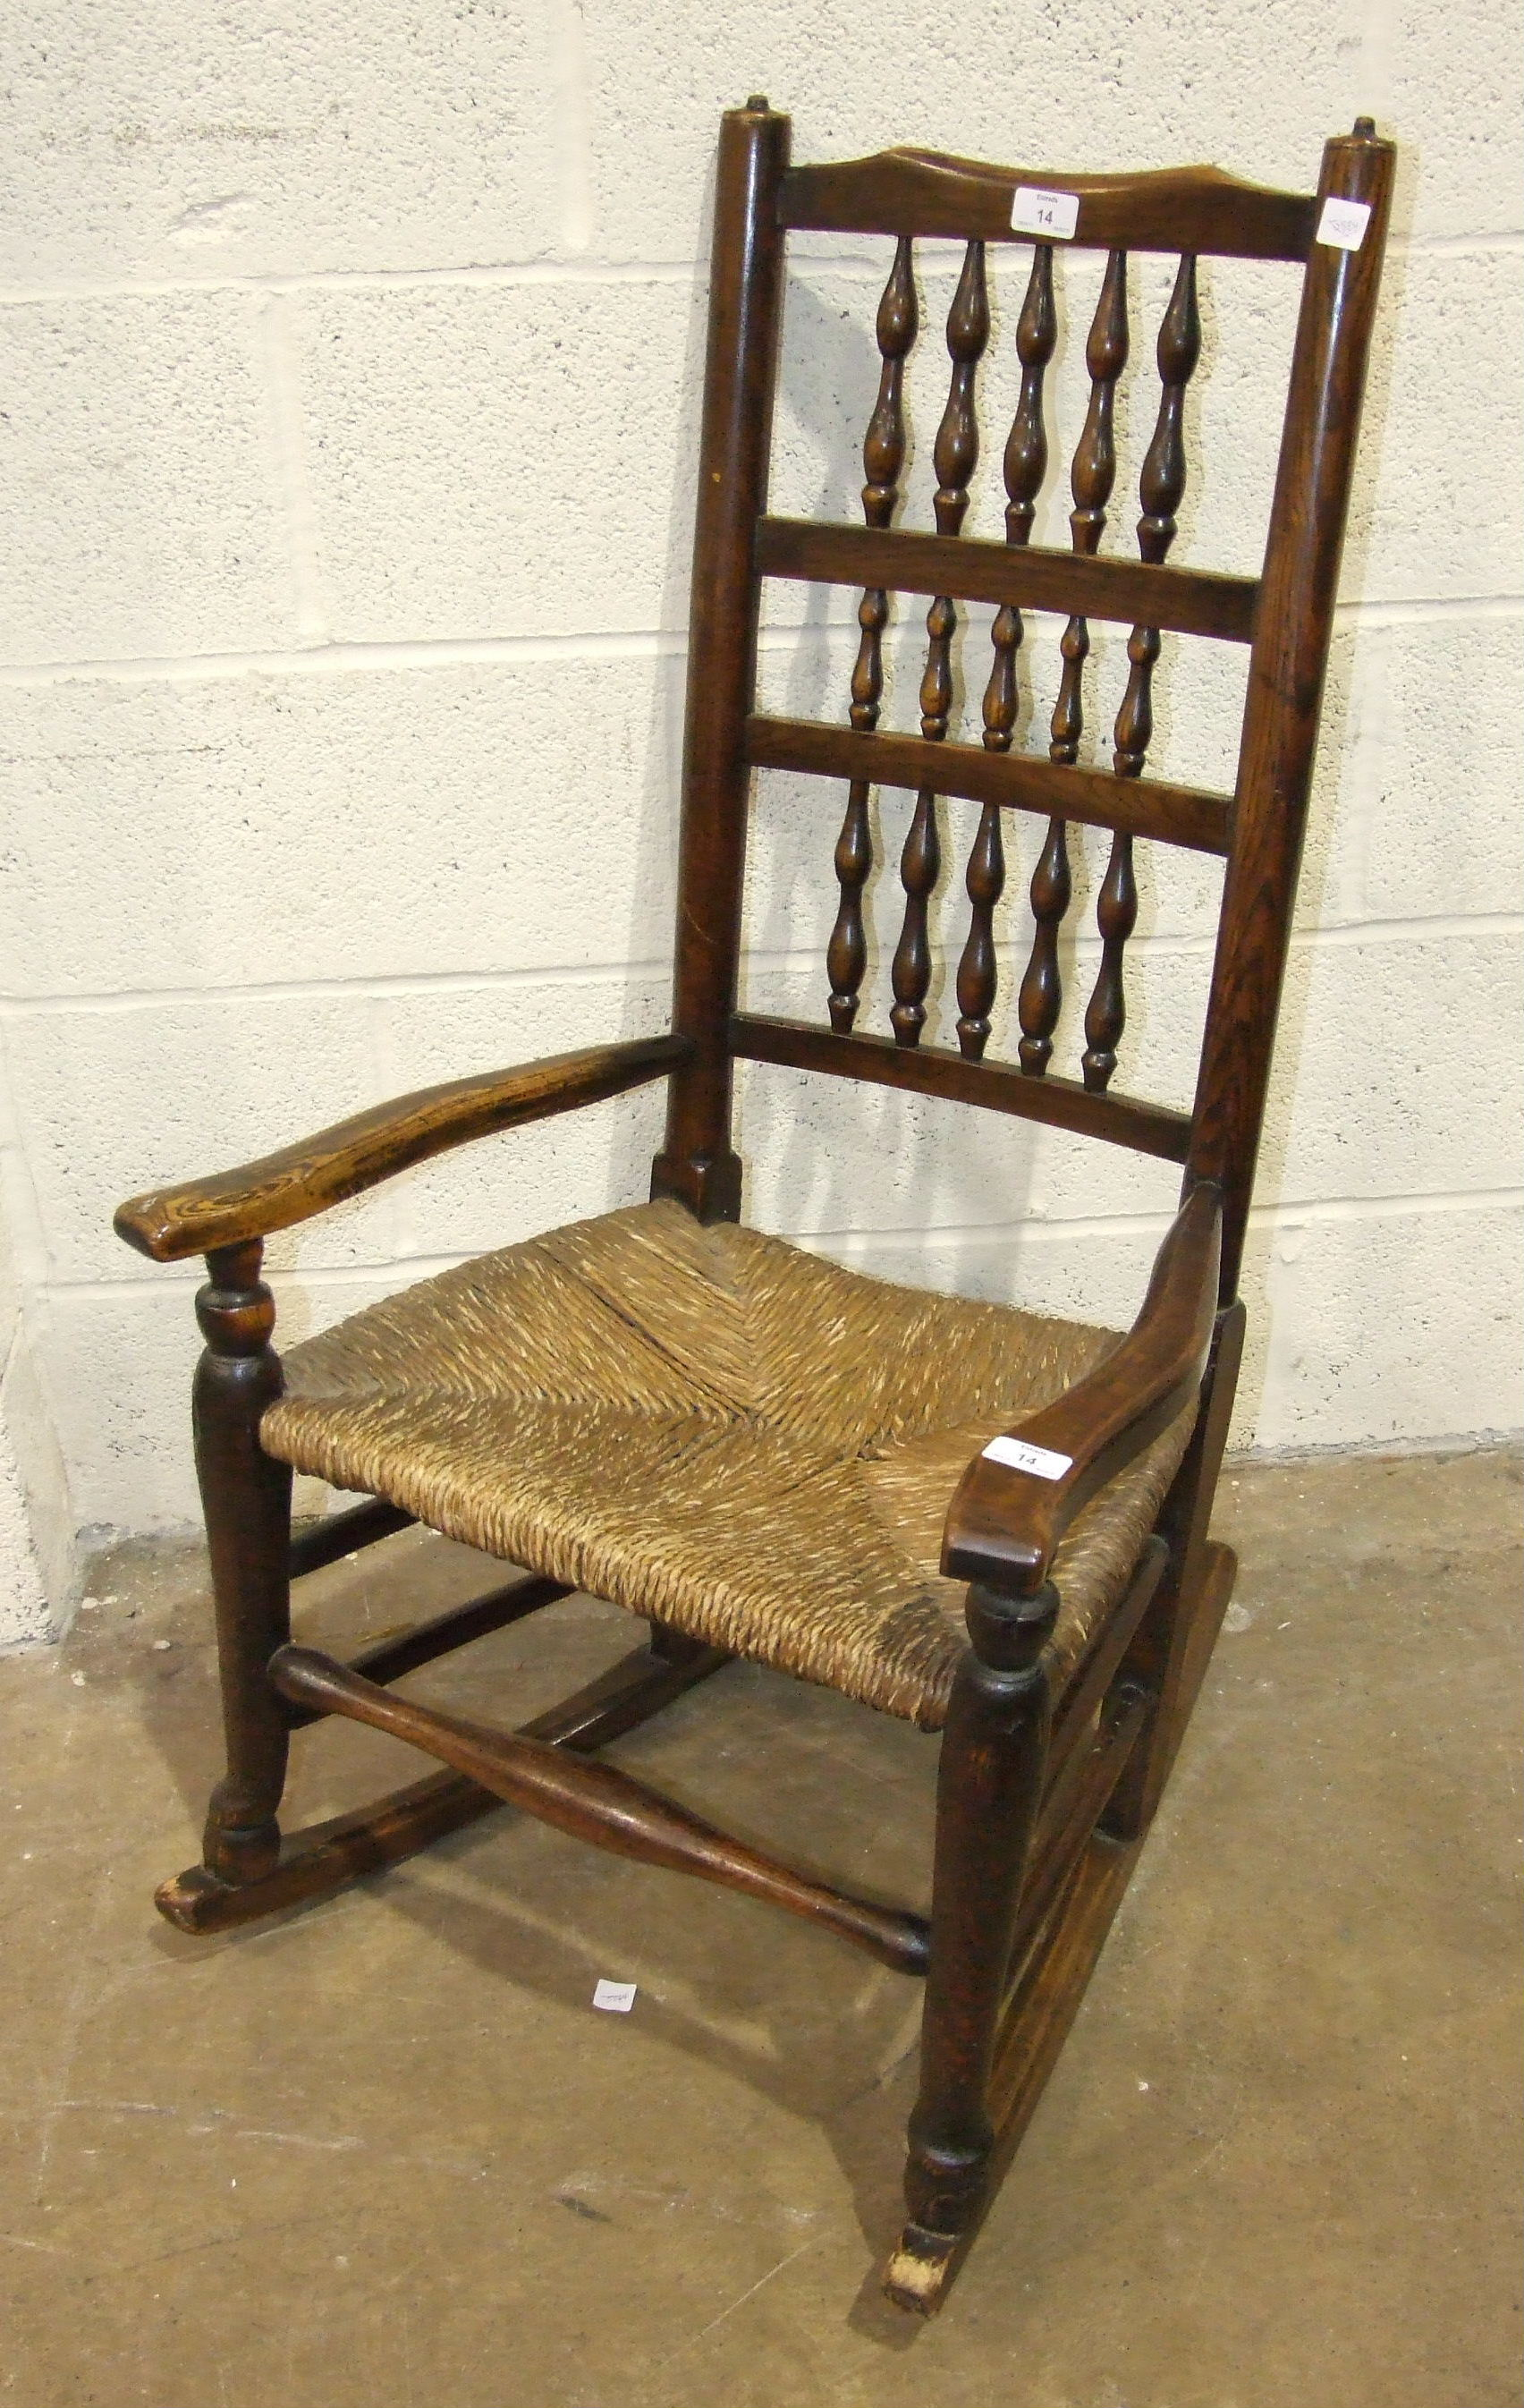 Lot 14 - A stained wood rocking chair with spindle back and rush seat.